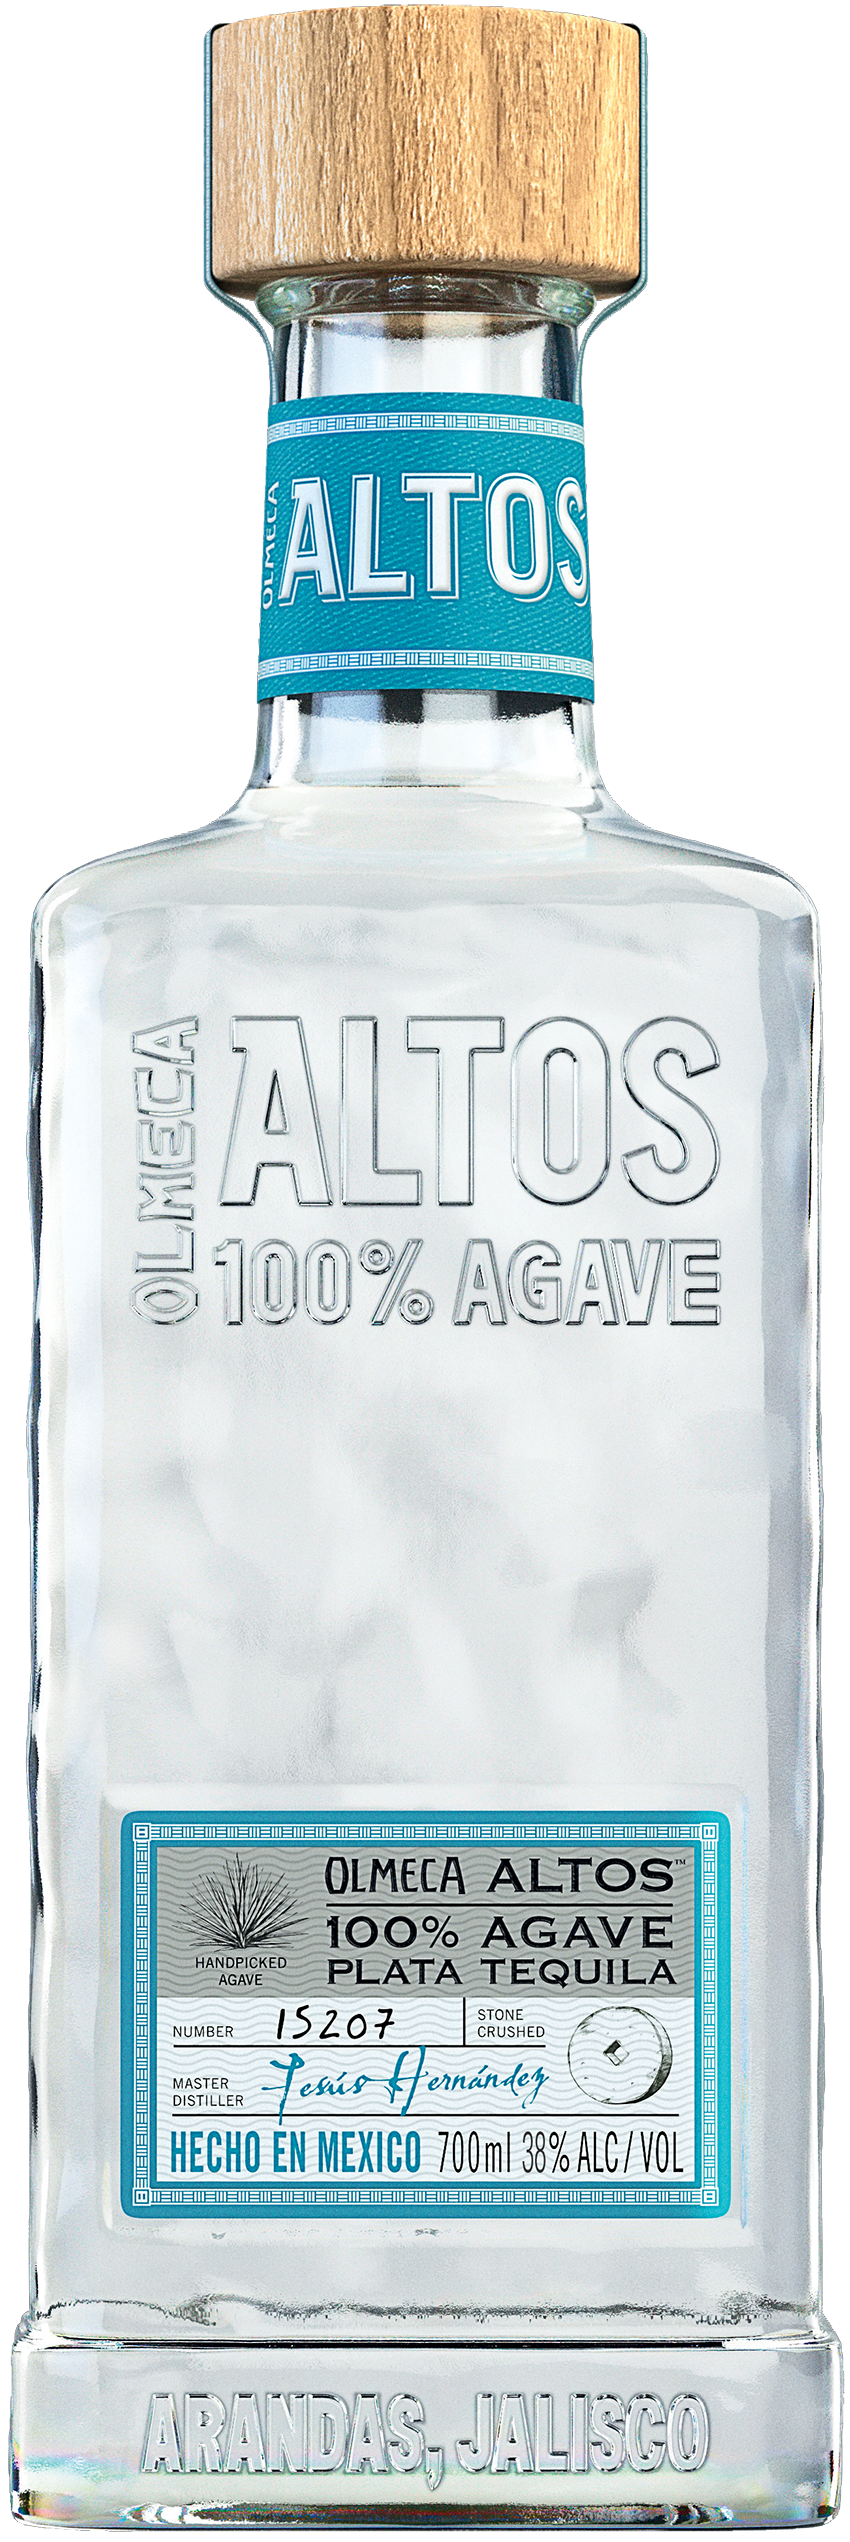 altos_blanco